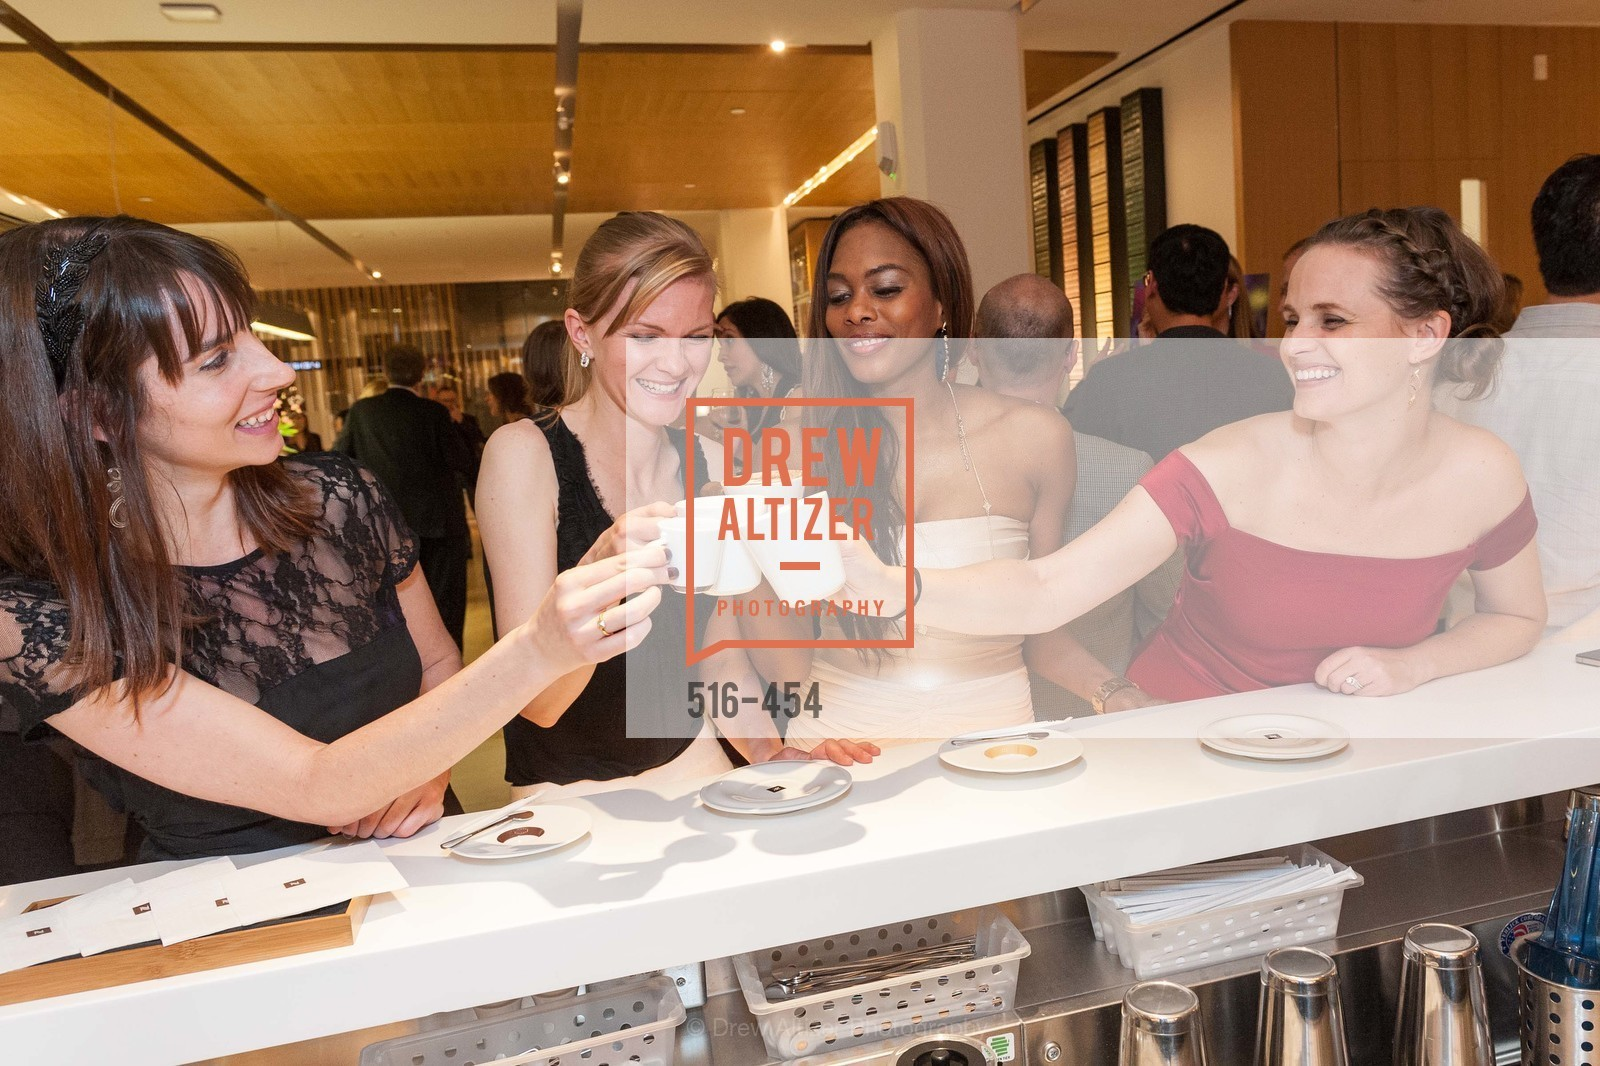 April Johnston, Greer Goings, Vanessa Jean Baptiste, Alyson Blume, 2014 SAN FRANCISCO BALLET ENCORE! Kick-Off Party, US. Nespresso Boutique Bar, 90 Grant Avenue, January 7th, 2014,Drew Altizer, Drew Altizer Photography, full-service agency, private events, San Francisco photographer, photographer california